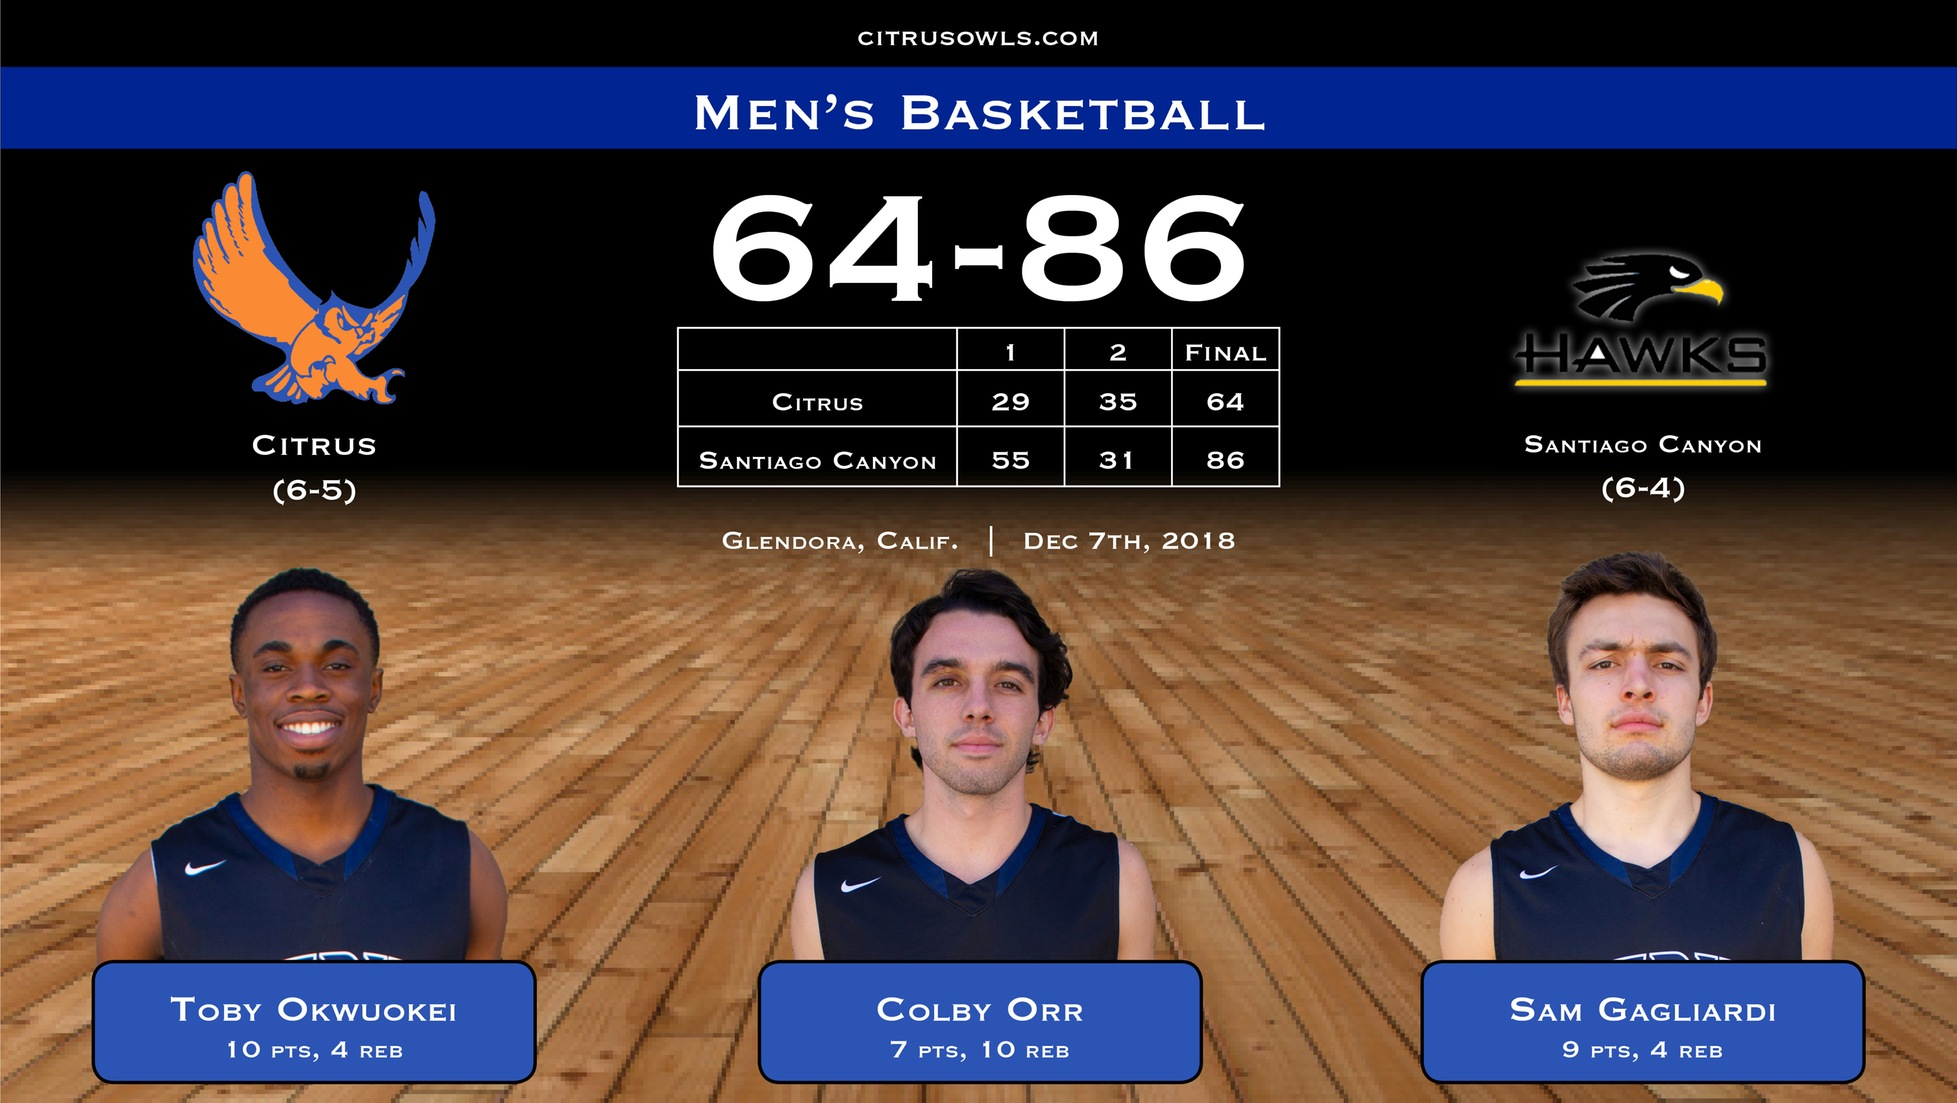 Men's Hoopsters Find Themselves in 3 Game Skid